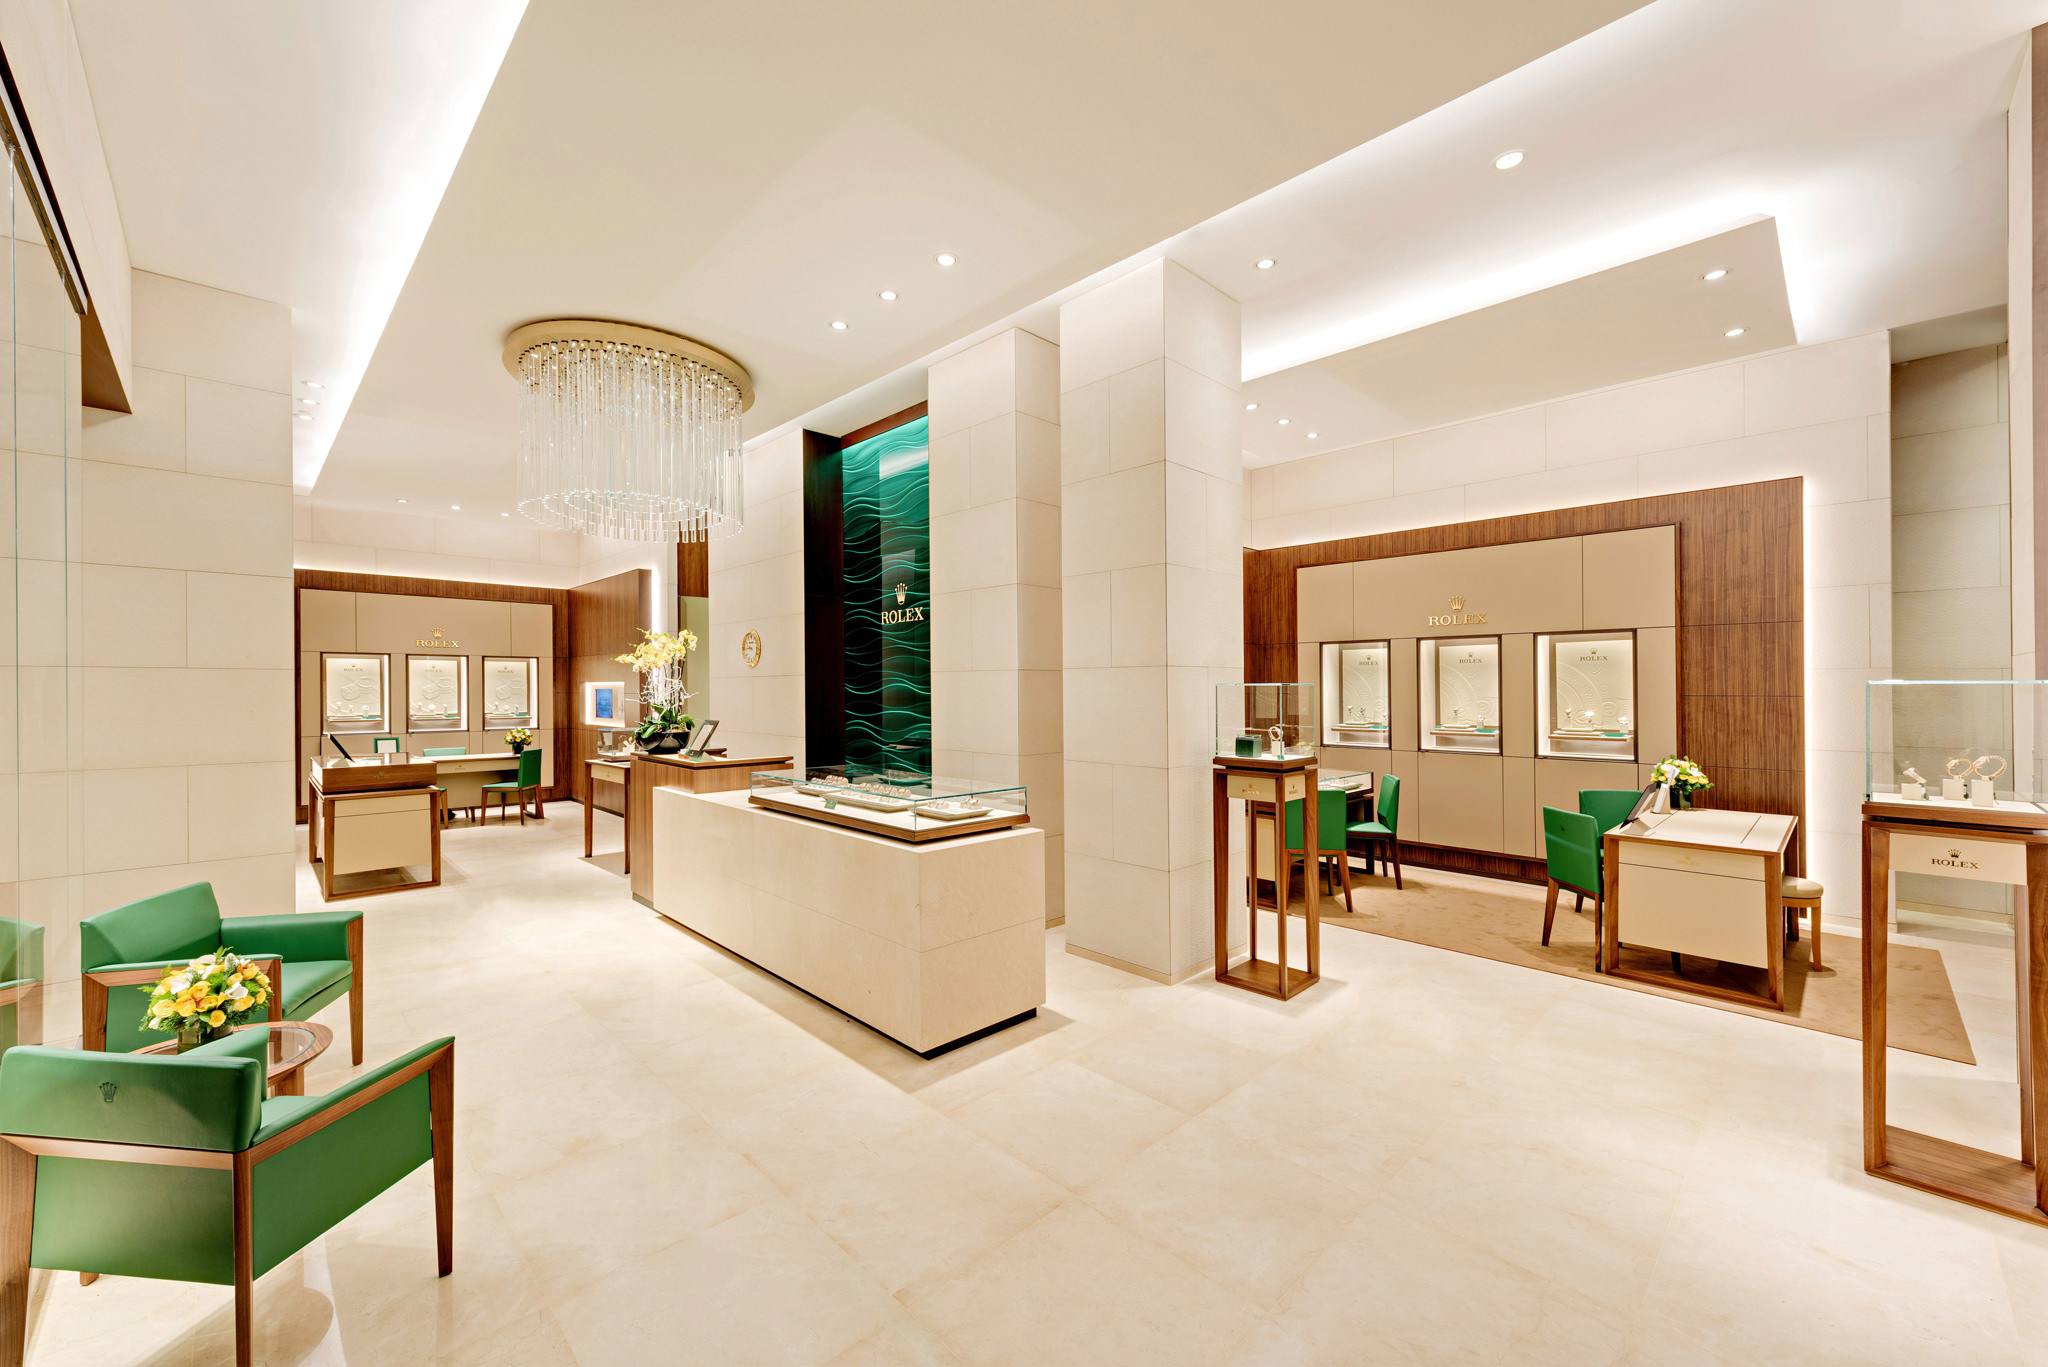 20161224 - Rolex - HCM - Commercial - Interior - Store - Retouch 0011.jpg